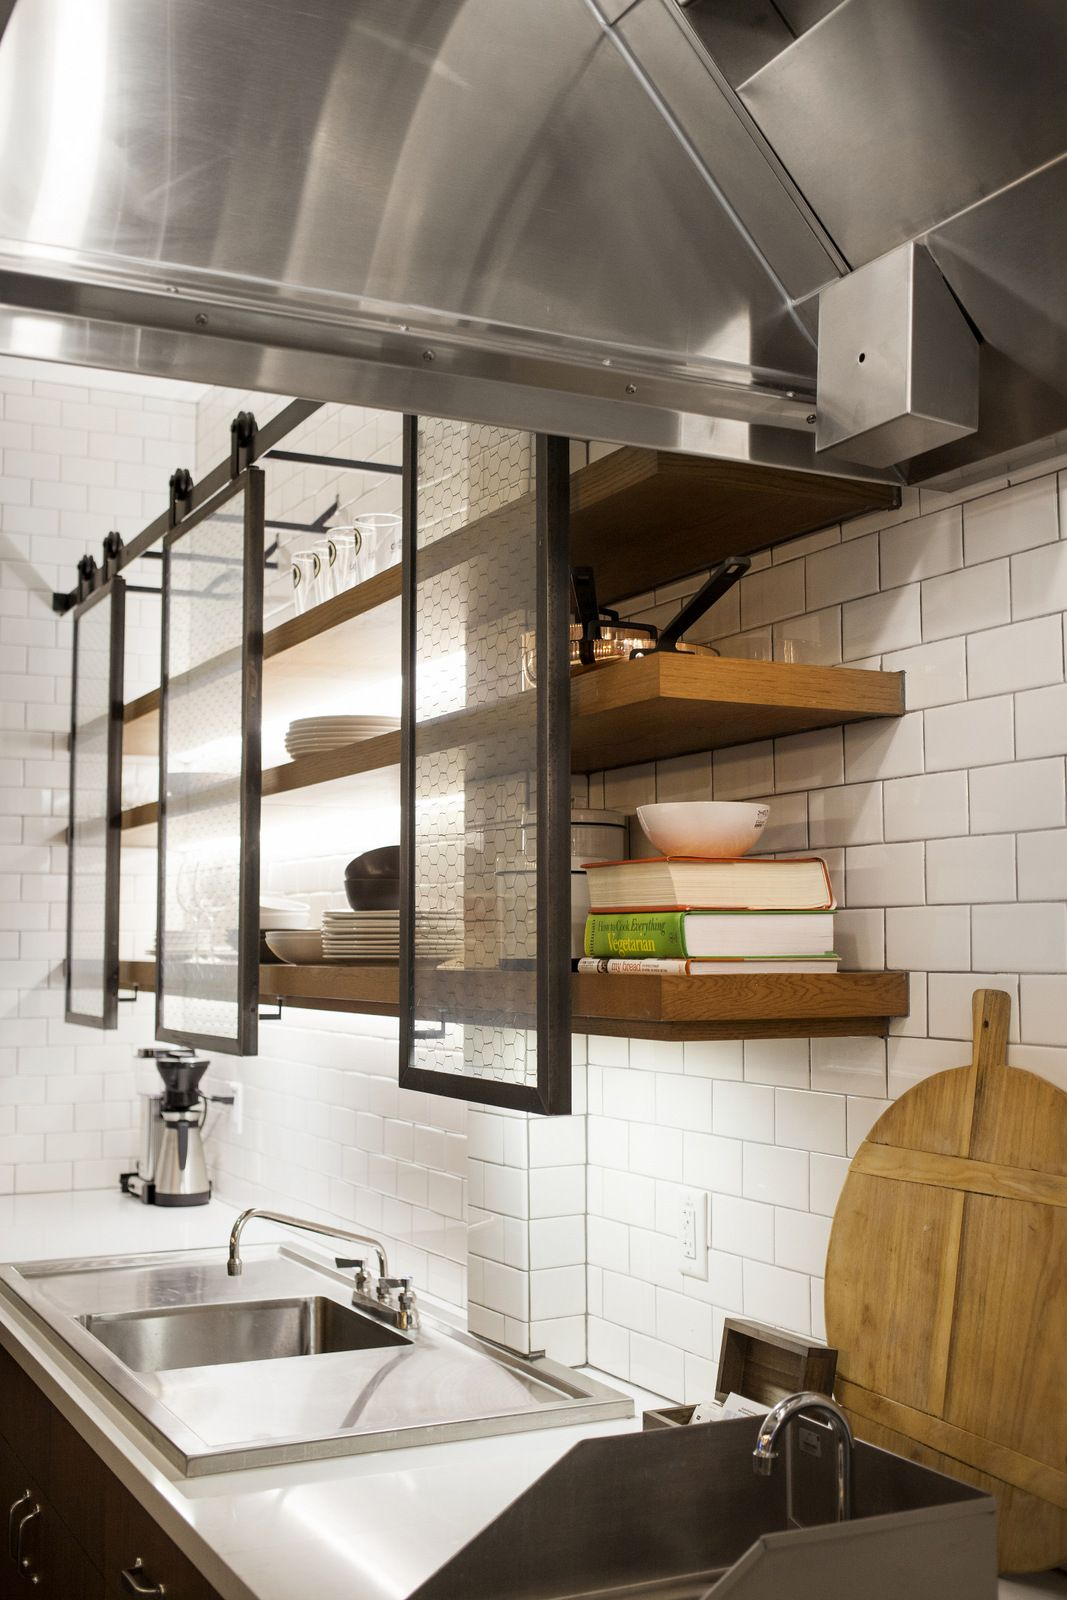 This stylish kitchen also features these really cool open shelves and a set of metal and glass frames